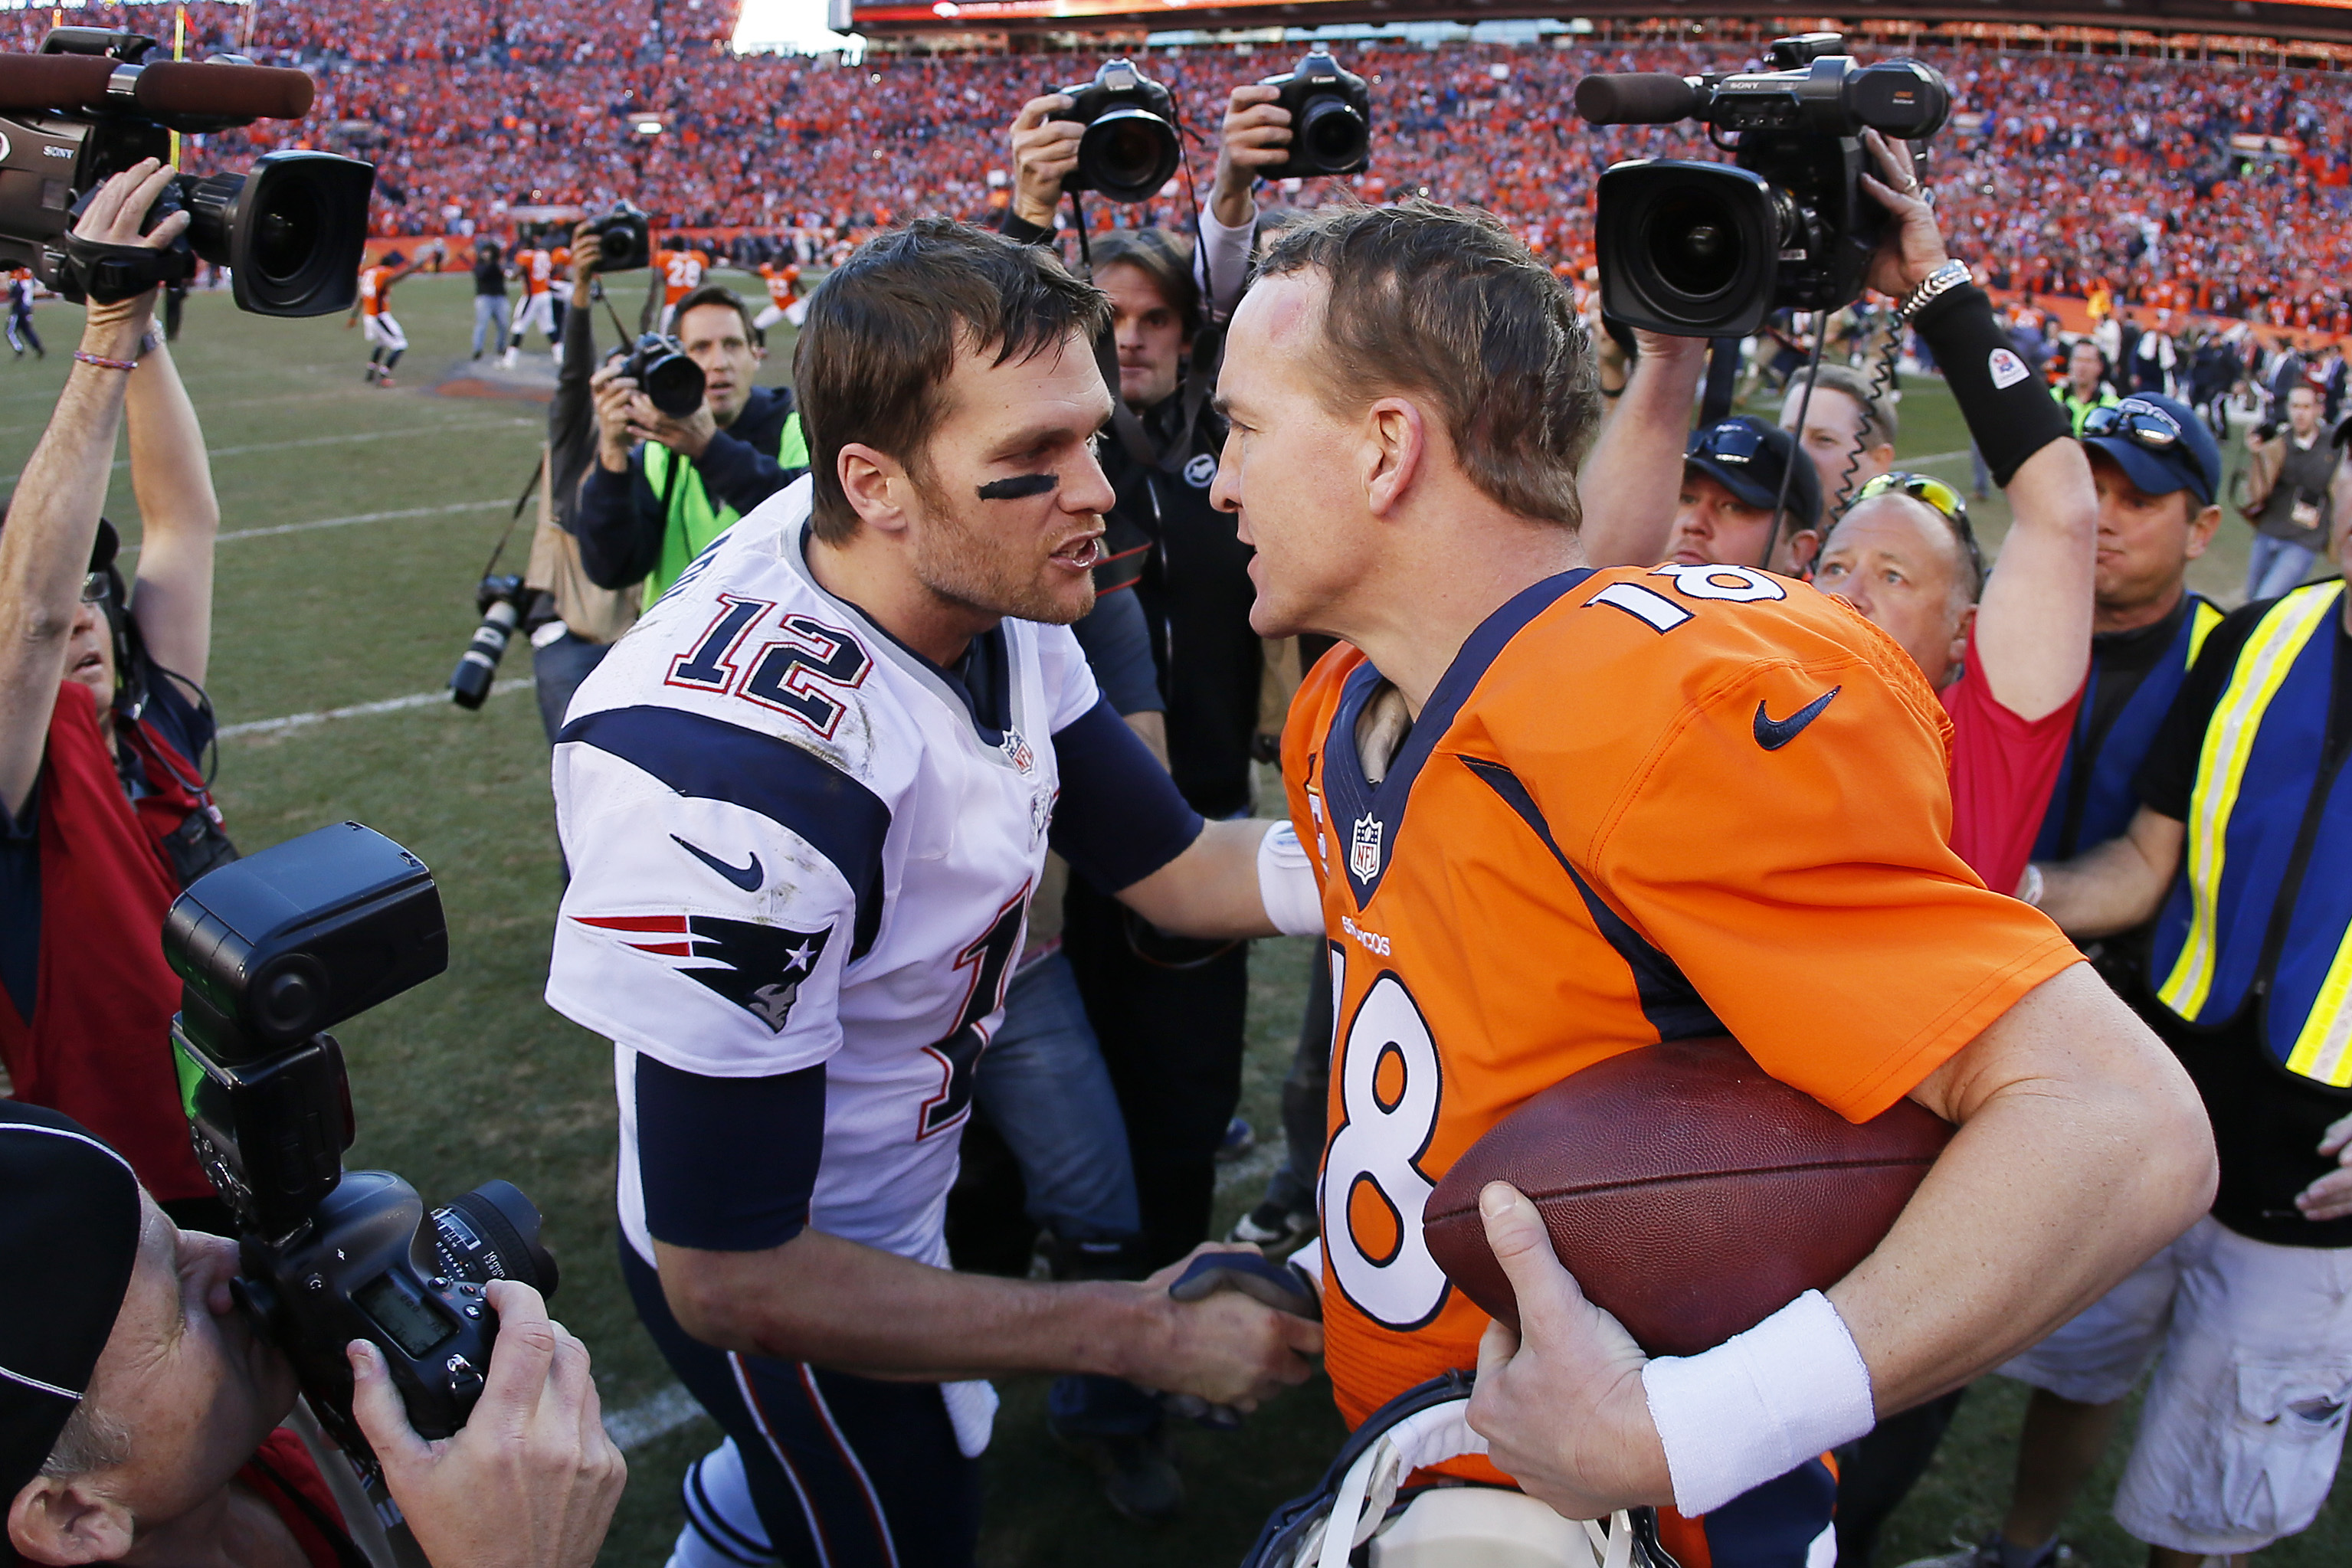 NFL Divisional Round Wrap: Manning vs. Brady is no longer a headliner